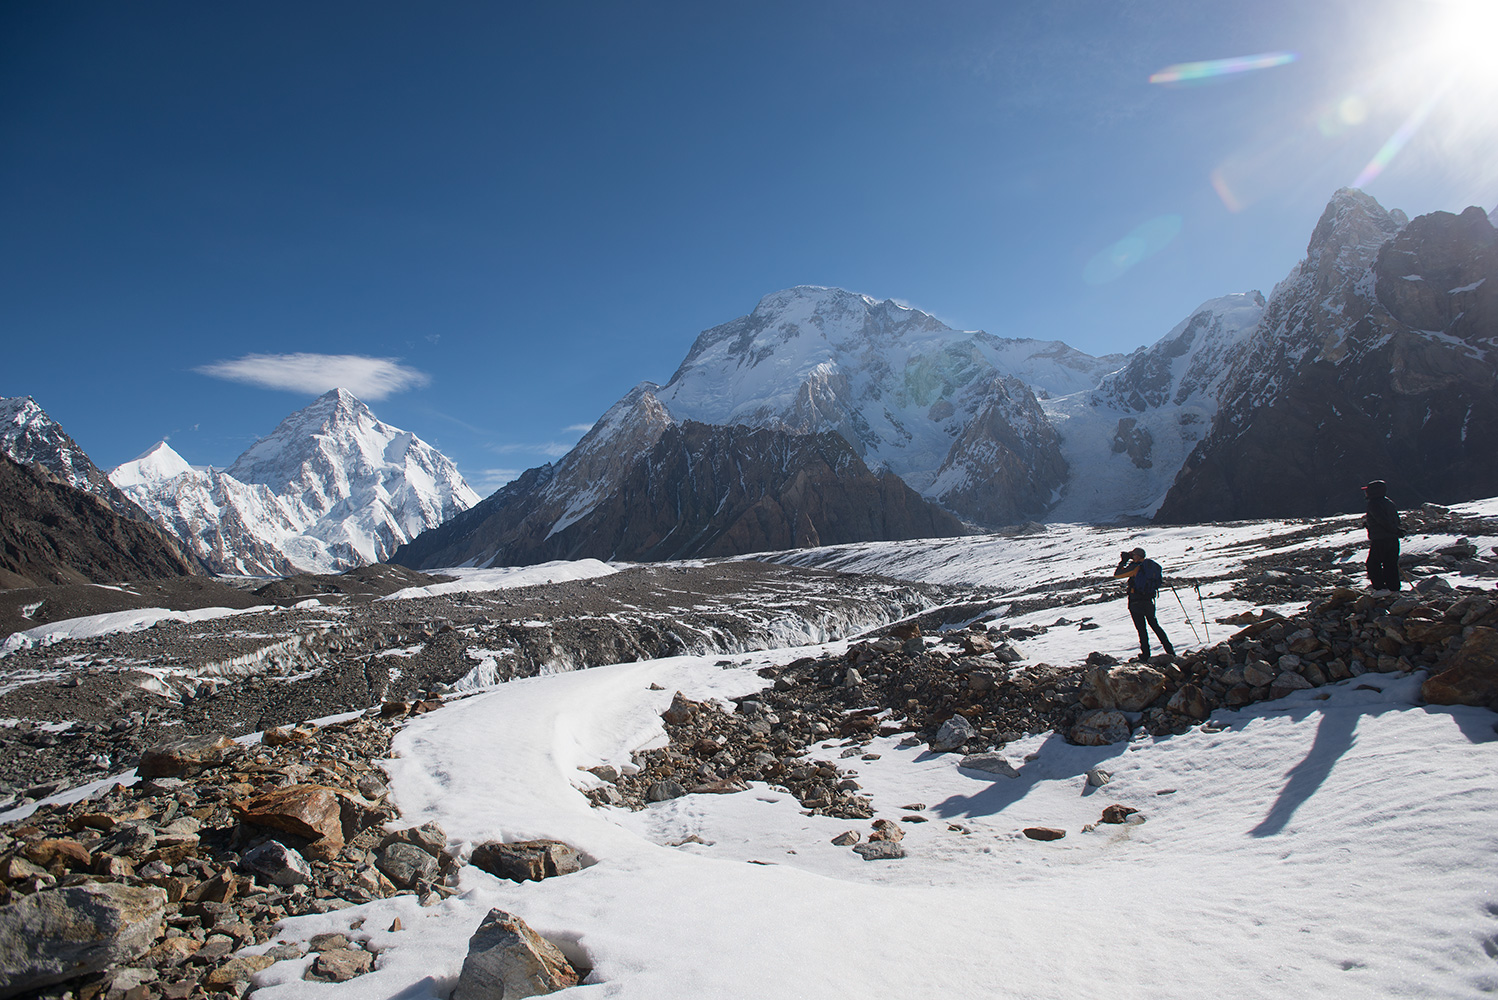 Easy ground at last! Broad Peak (8051m) directly ahead, with K2 (8611m) and Savoia Kangri (7286m) to the left.